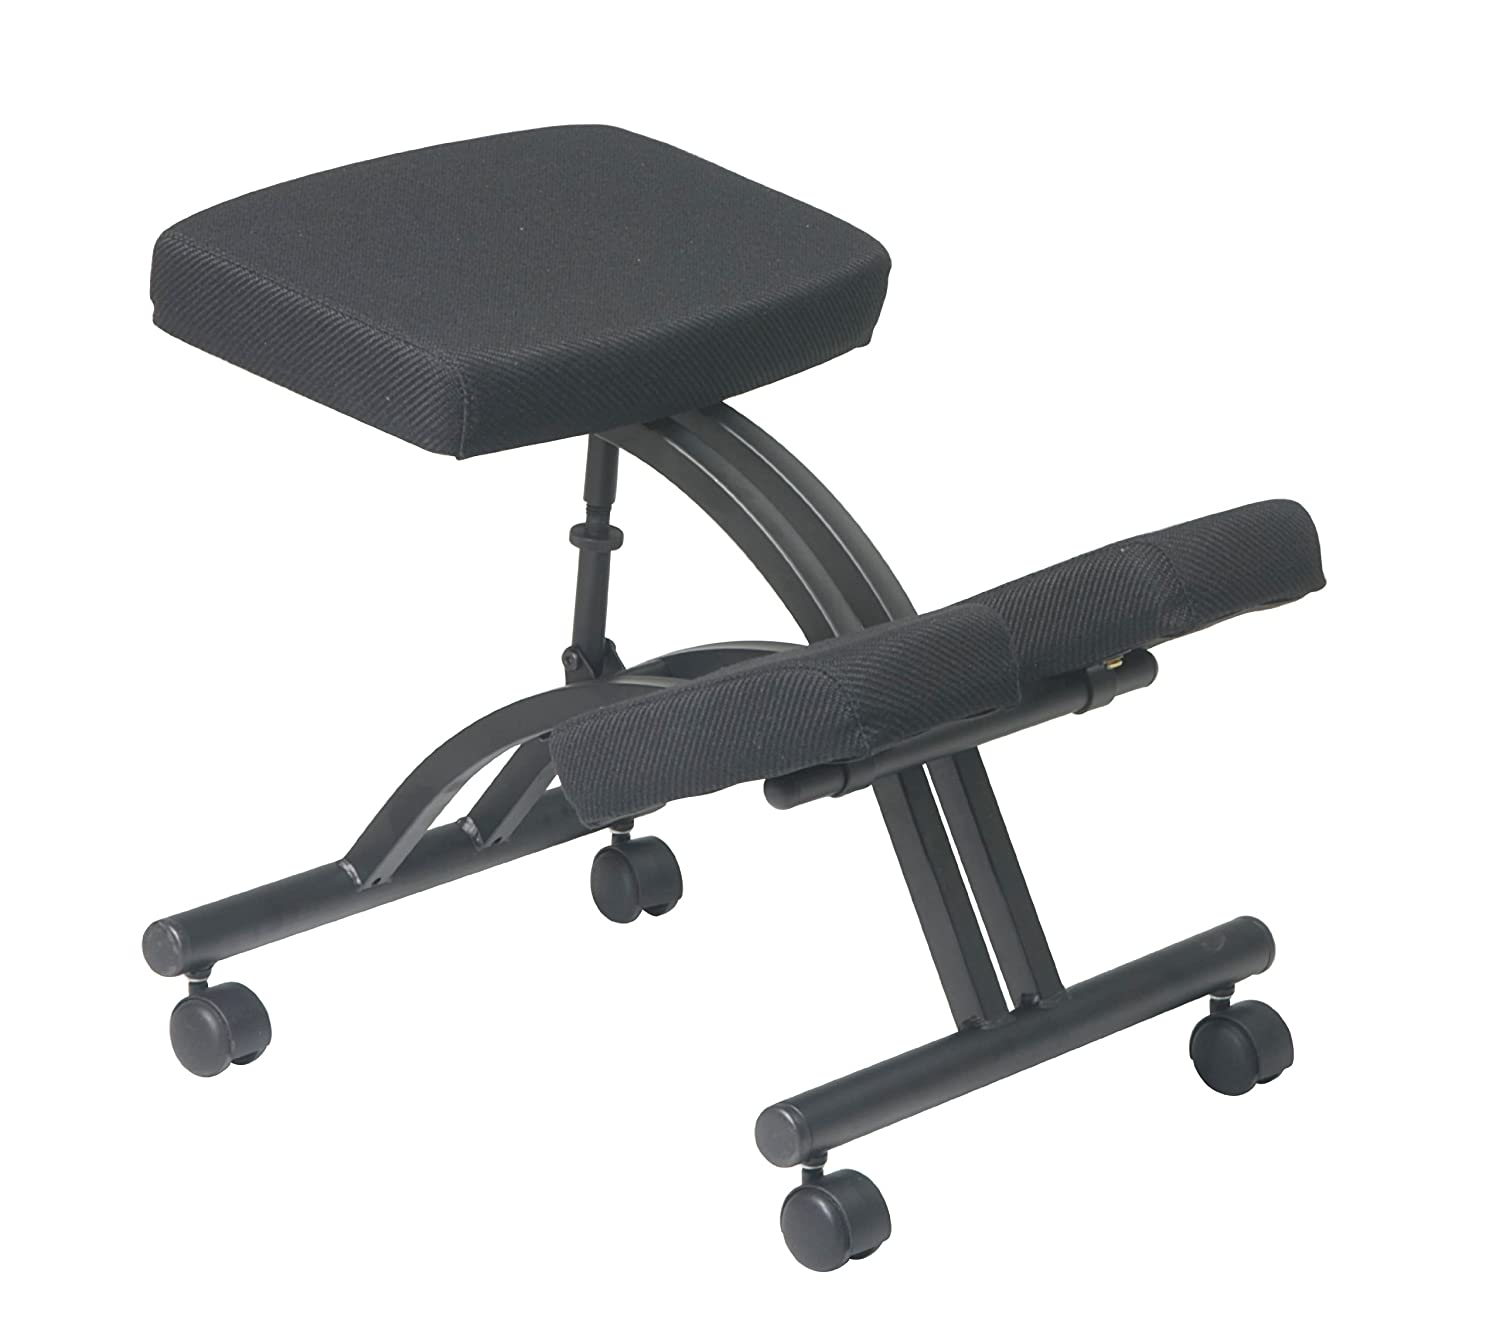 Backless ergonomic chair - Amazon Com Office Star Ergonomically Designed Knee Chair With Casters Memory Foam And Black Metal Base Black Kitchen Dining